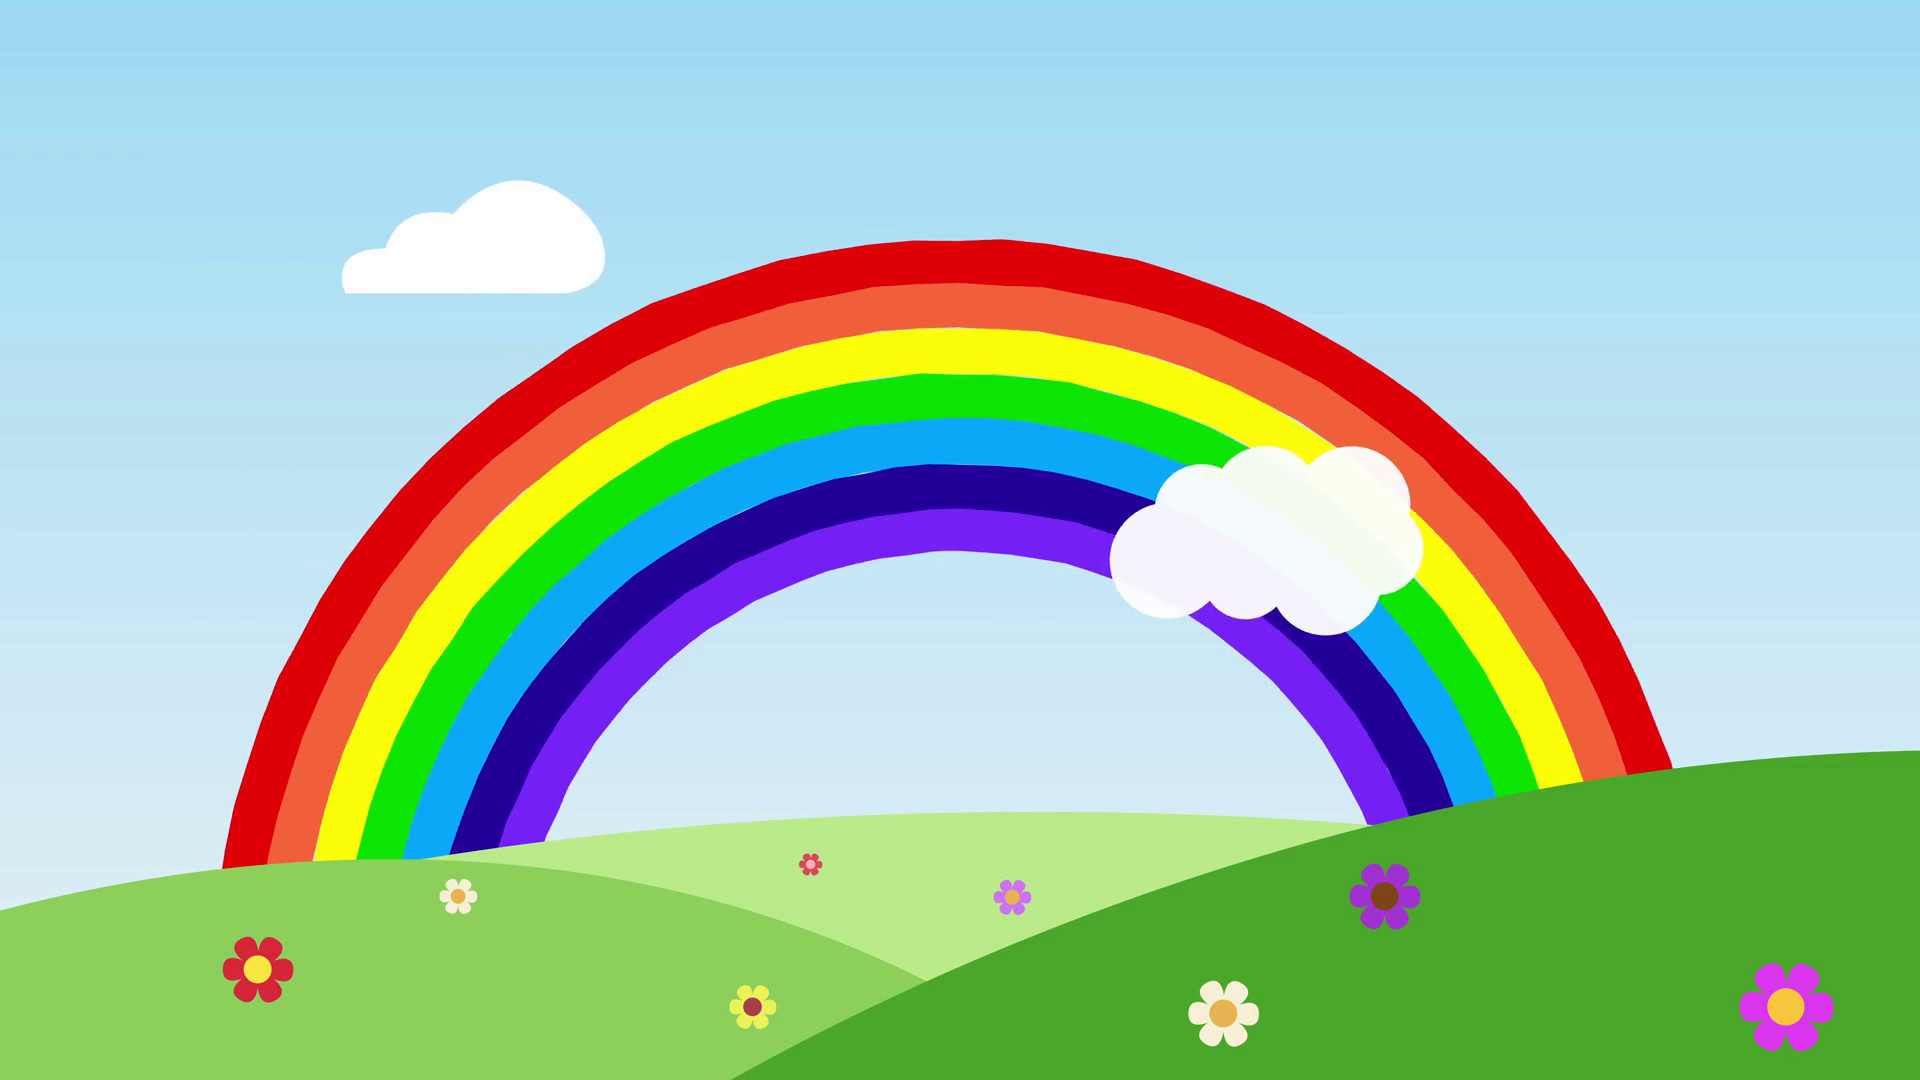 … rainbow with some clouds over the flowers hills with space for your  text or logo. nature and rainbow seamless loop. Rainbow Background for  children full …